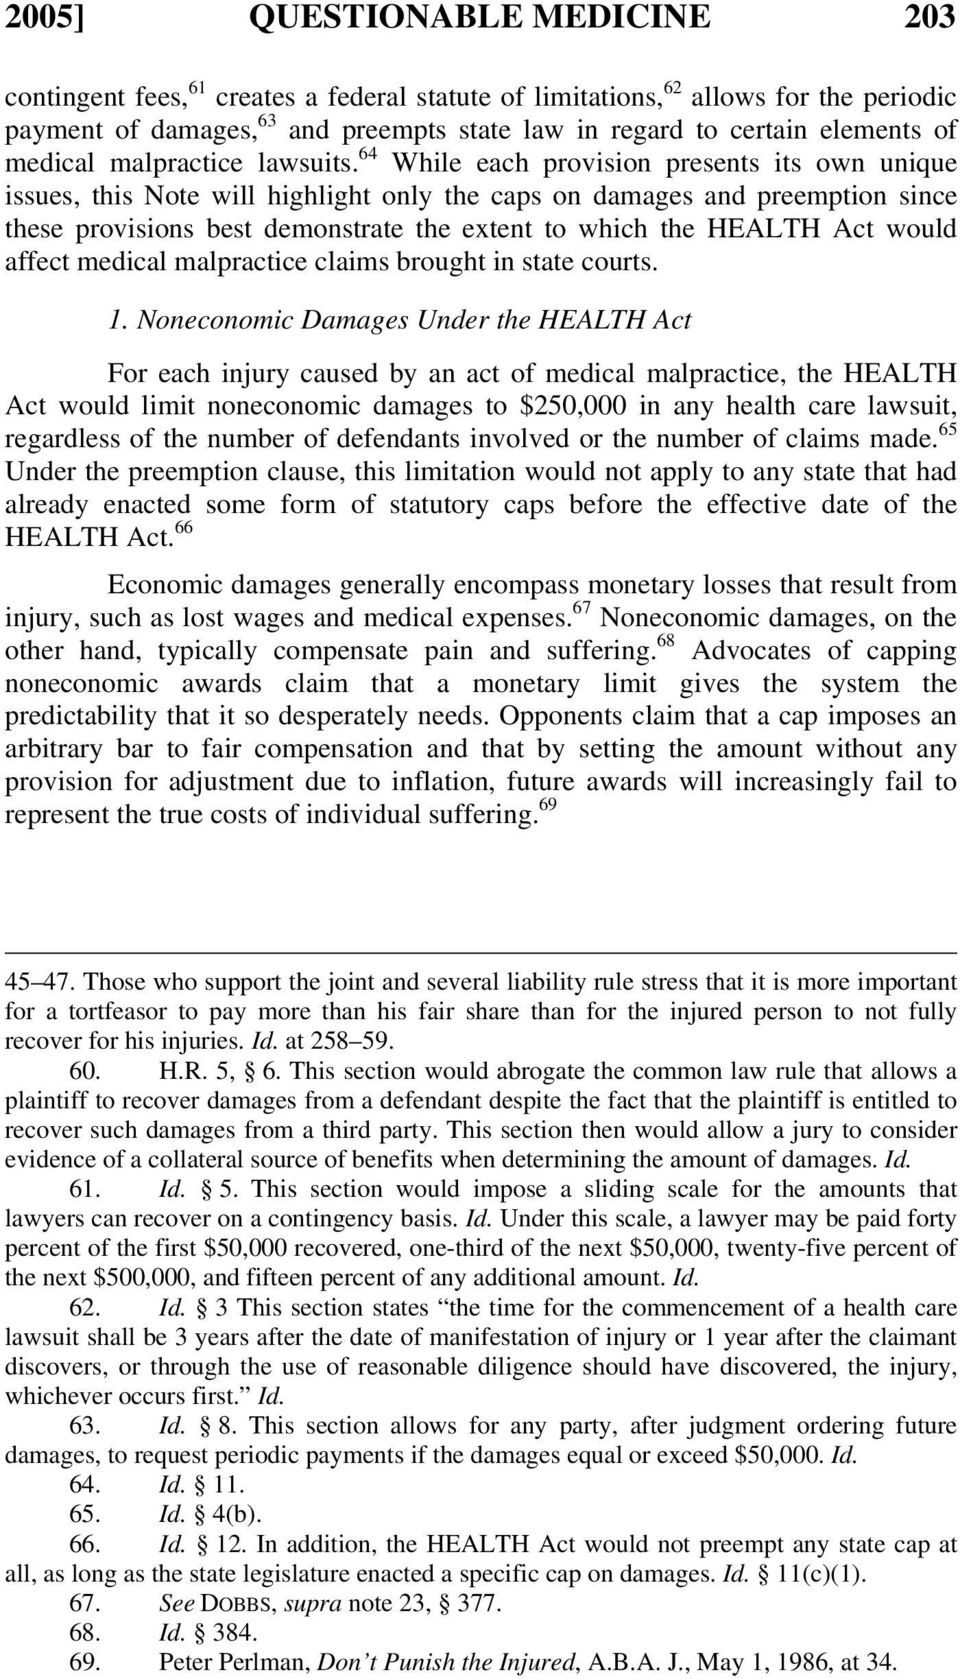 64 While each provision presents its own unique issues, this Note will highlight only the caps on damages and preemption since these provisions best demonstrate the extent to which the HEALTH Act